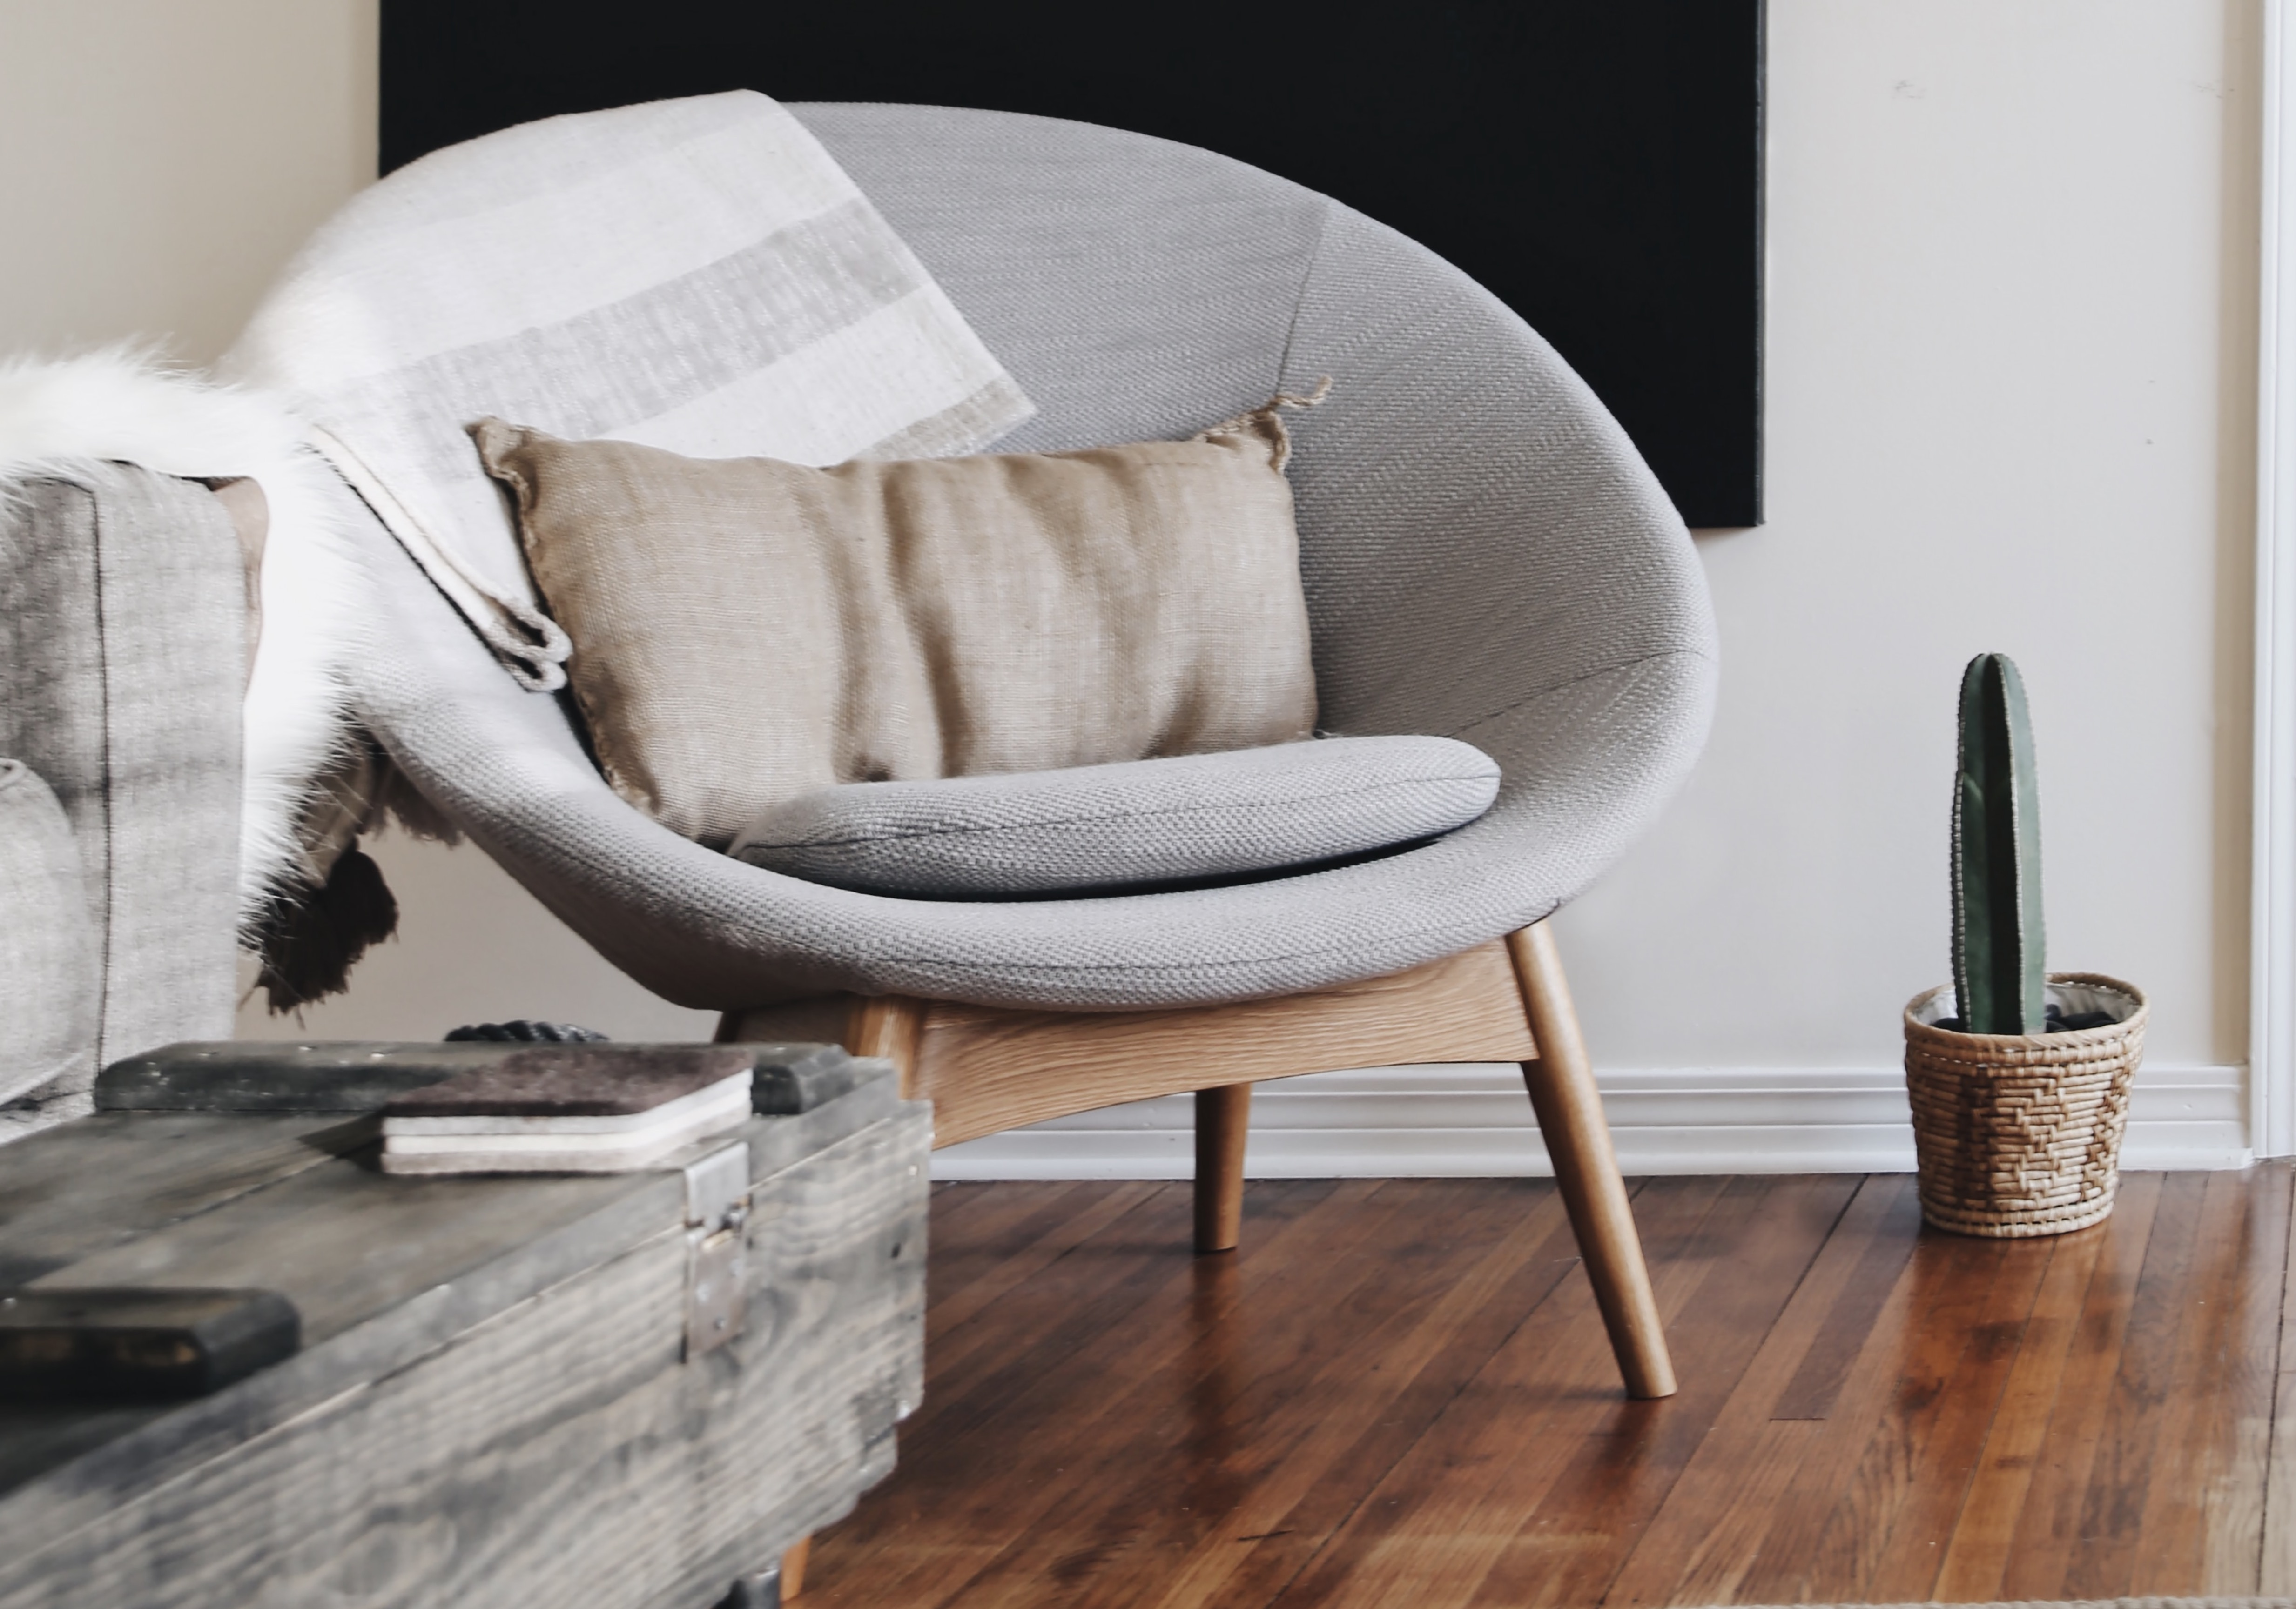 Beautiful Accent chairs for your living room or bedroom under 300$